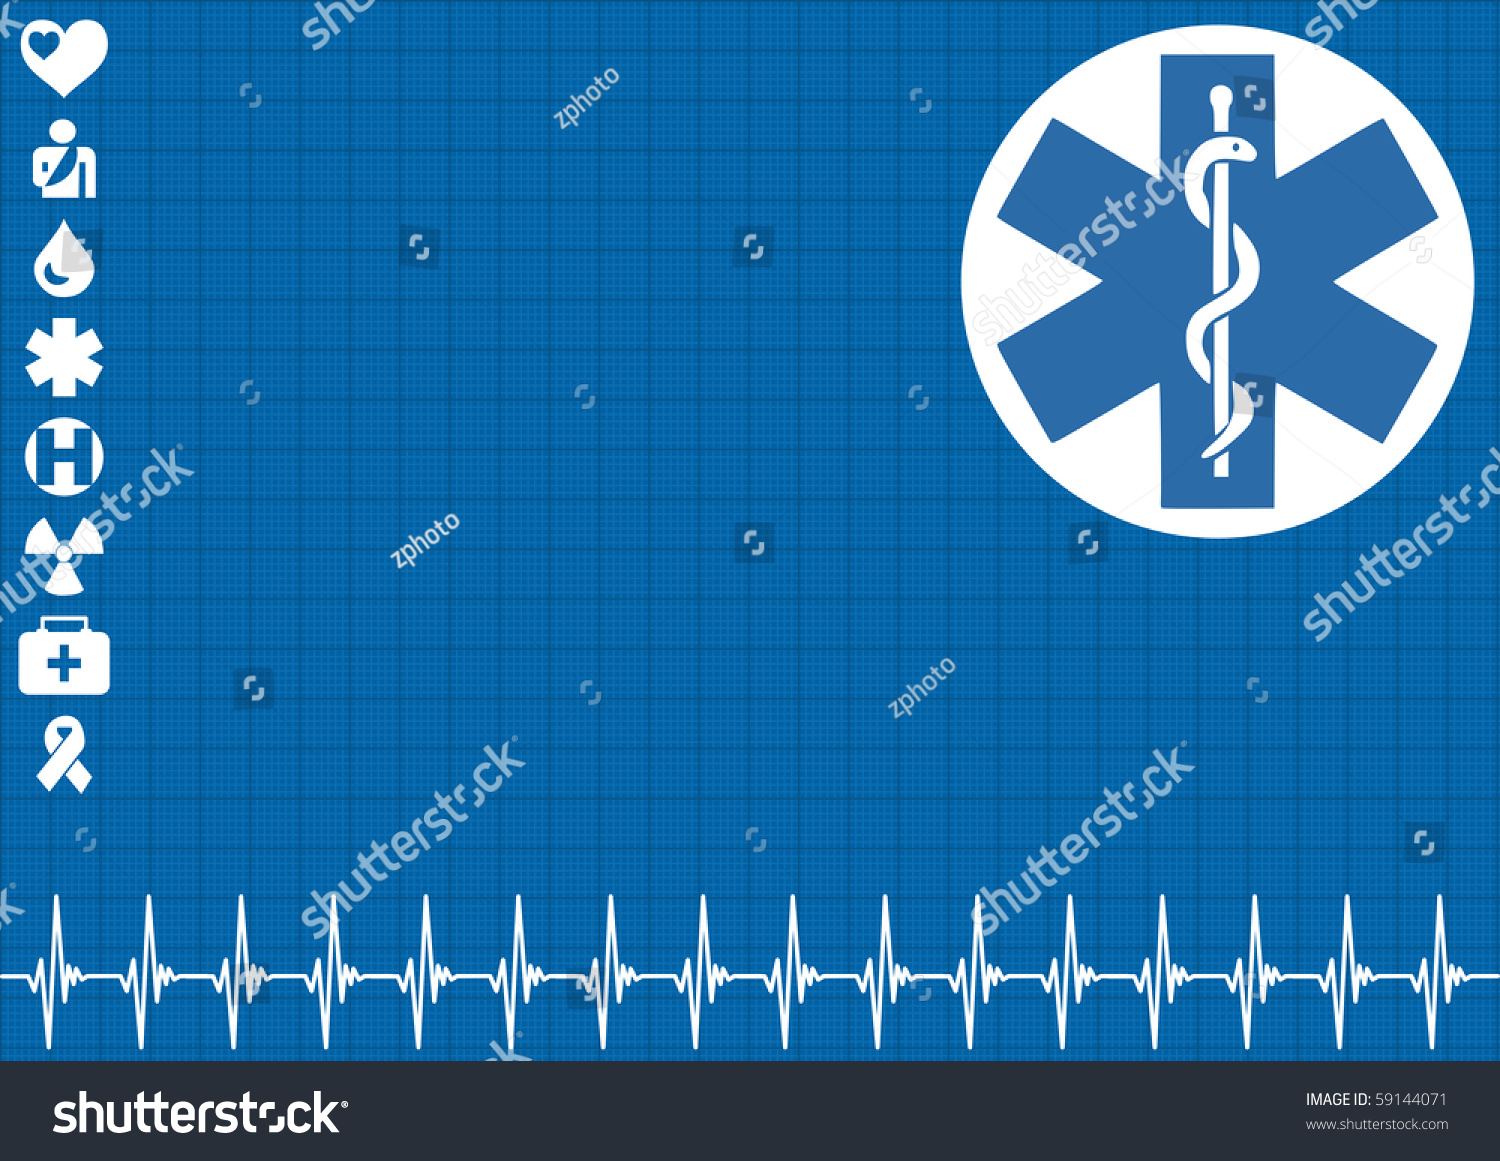 Heartbeat Pattern Heartbeat Vector Pattern Vector: Medical Blue Background With Ekg Heartbeat Pattern Stock